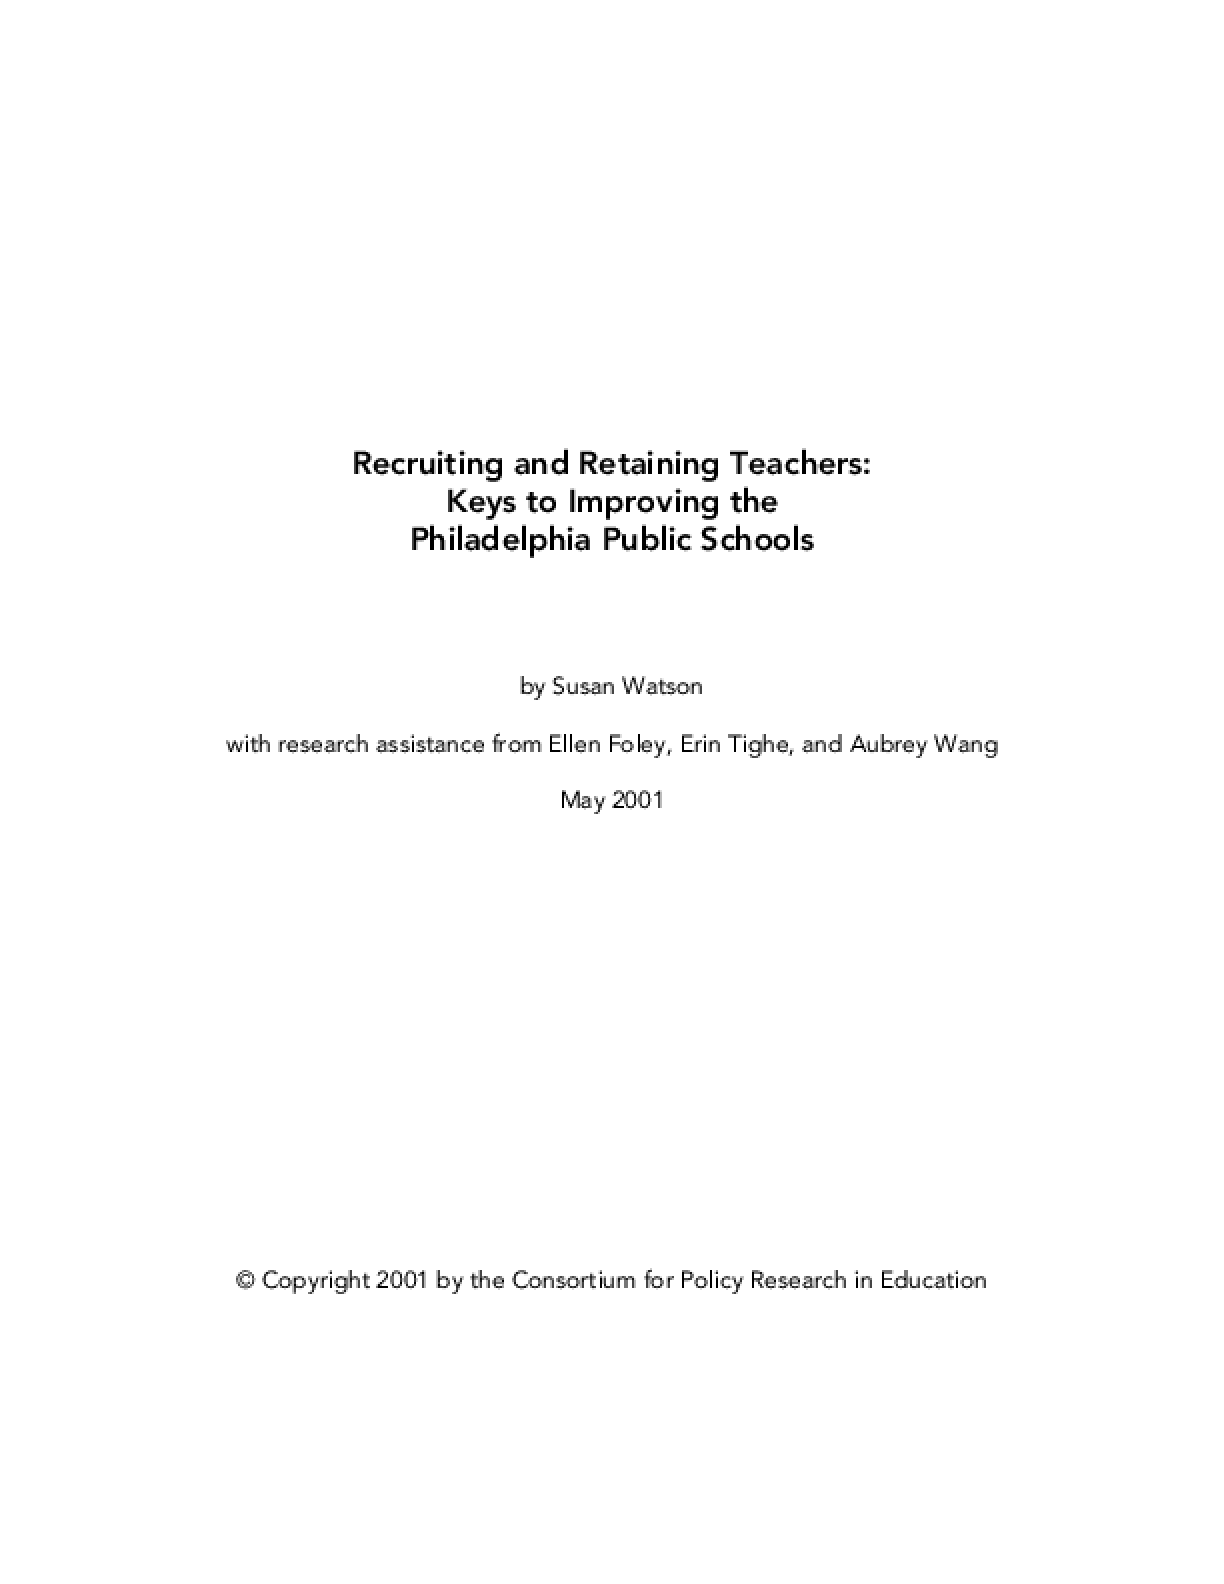 Recruiting and Retaining Teachers: Keys to Improving the Philadelphia Public Schools